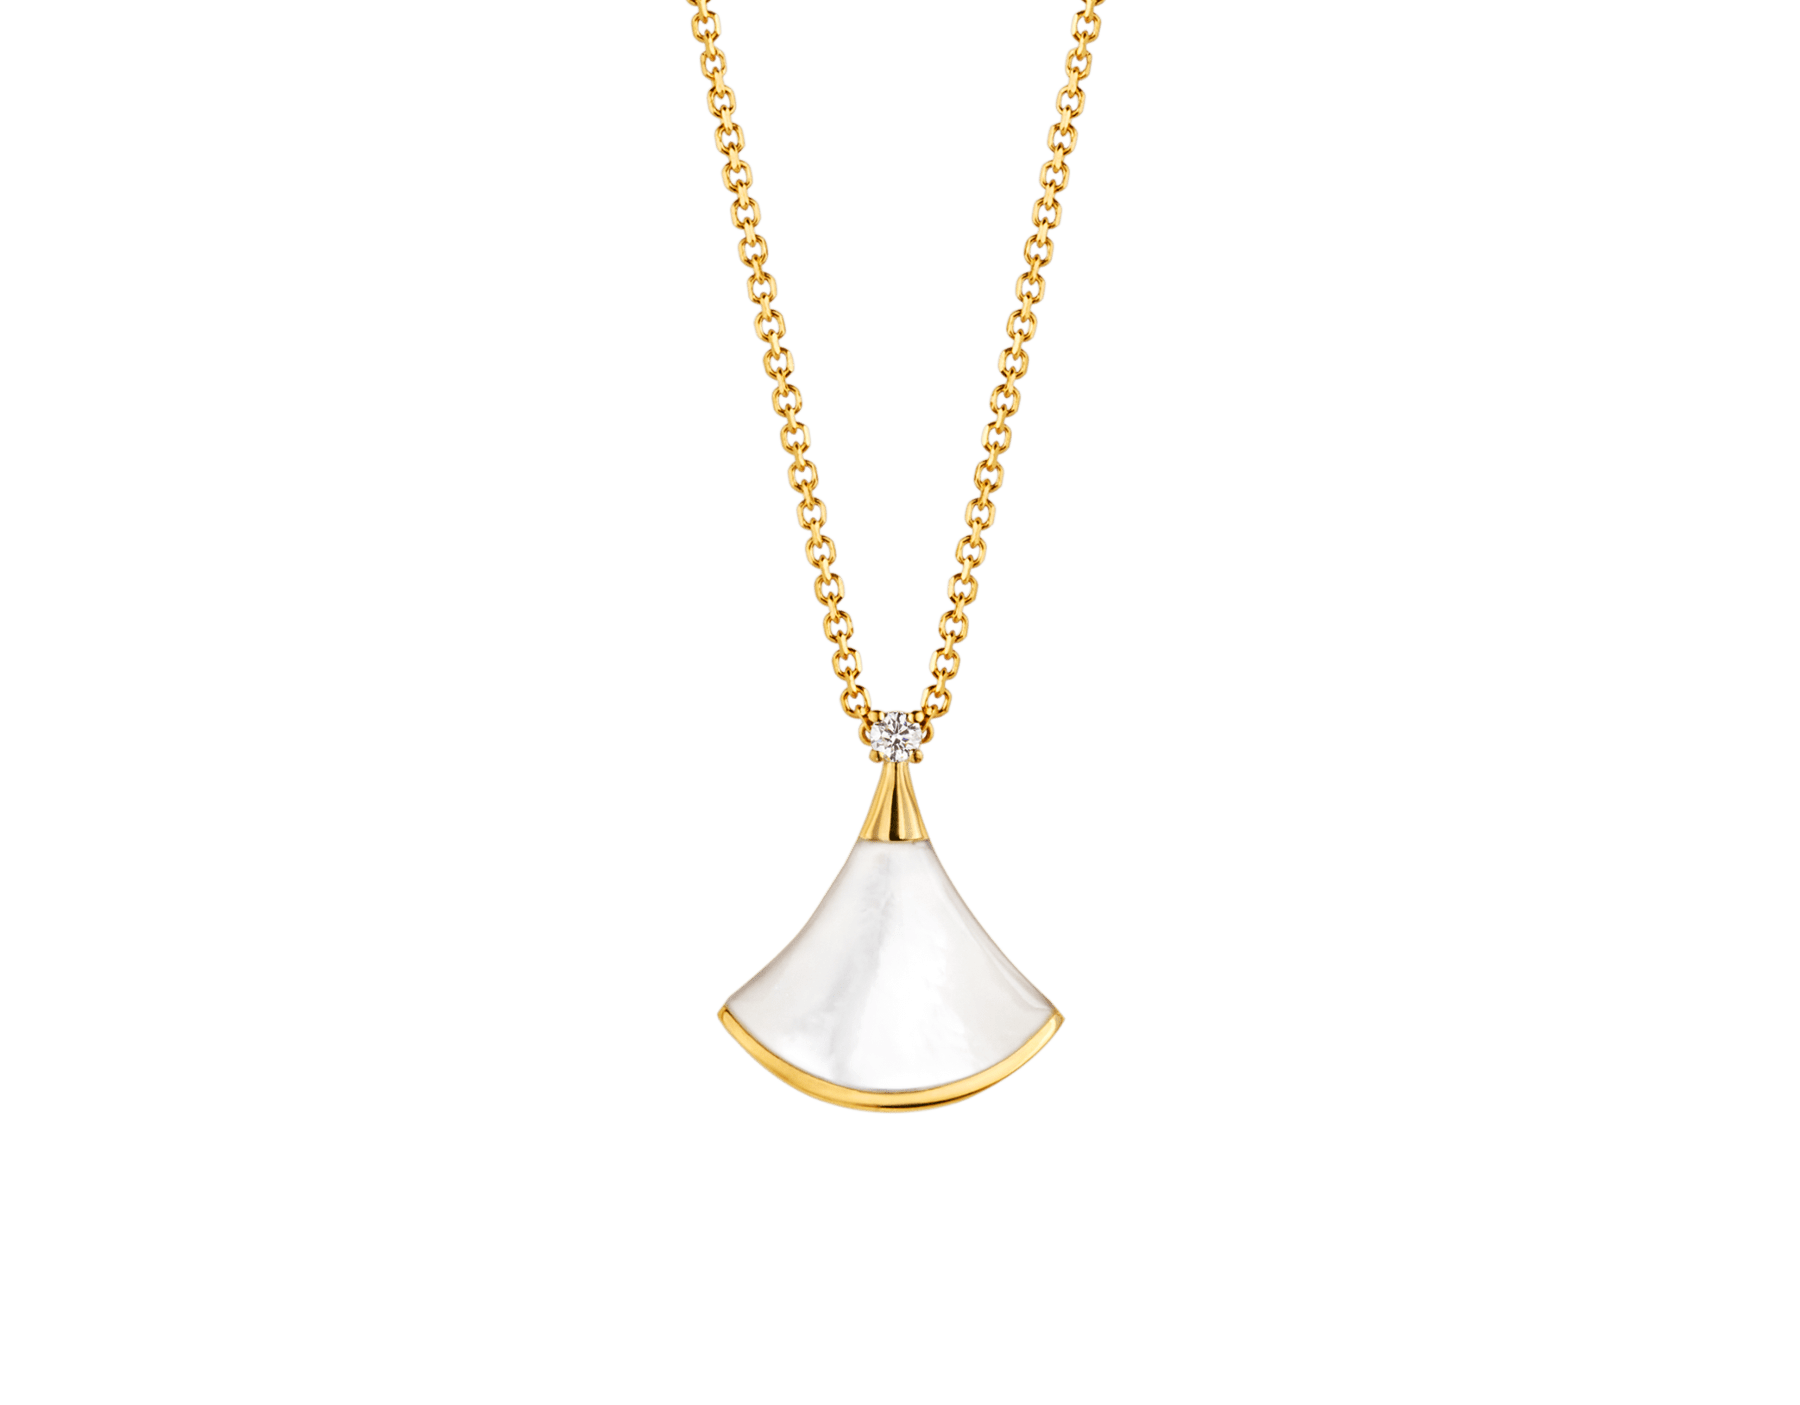 DIVAS' DREAM 18 kt yellow gold necklace with pendant set with one diamond and mother-of-pearl element 357510 image 1